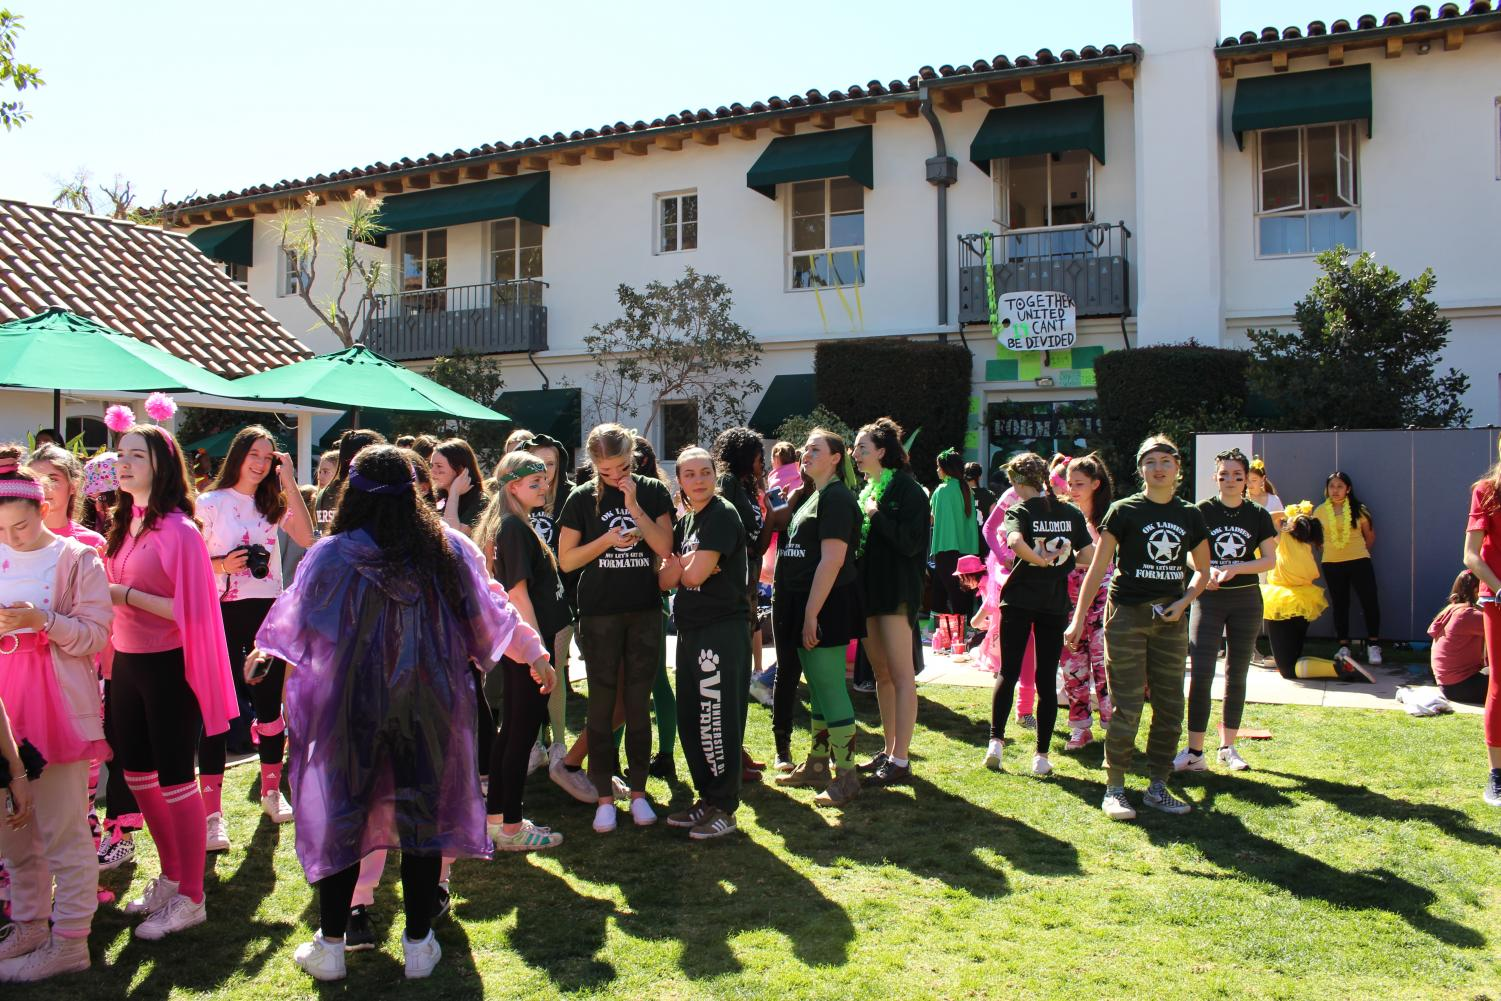 Students+gather+in+the+courtyard+to+celebrate+the+third+annual+Color+Wars.+The+Class+of+2018+won+with+31+points+overall.